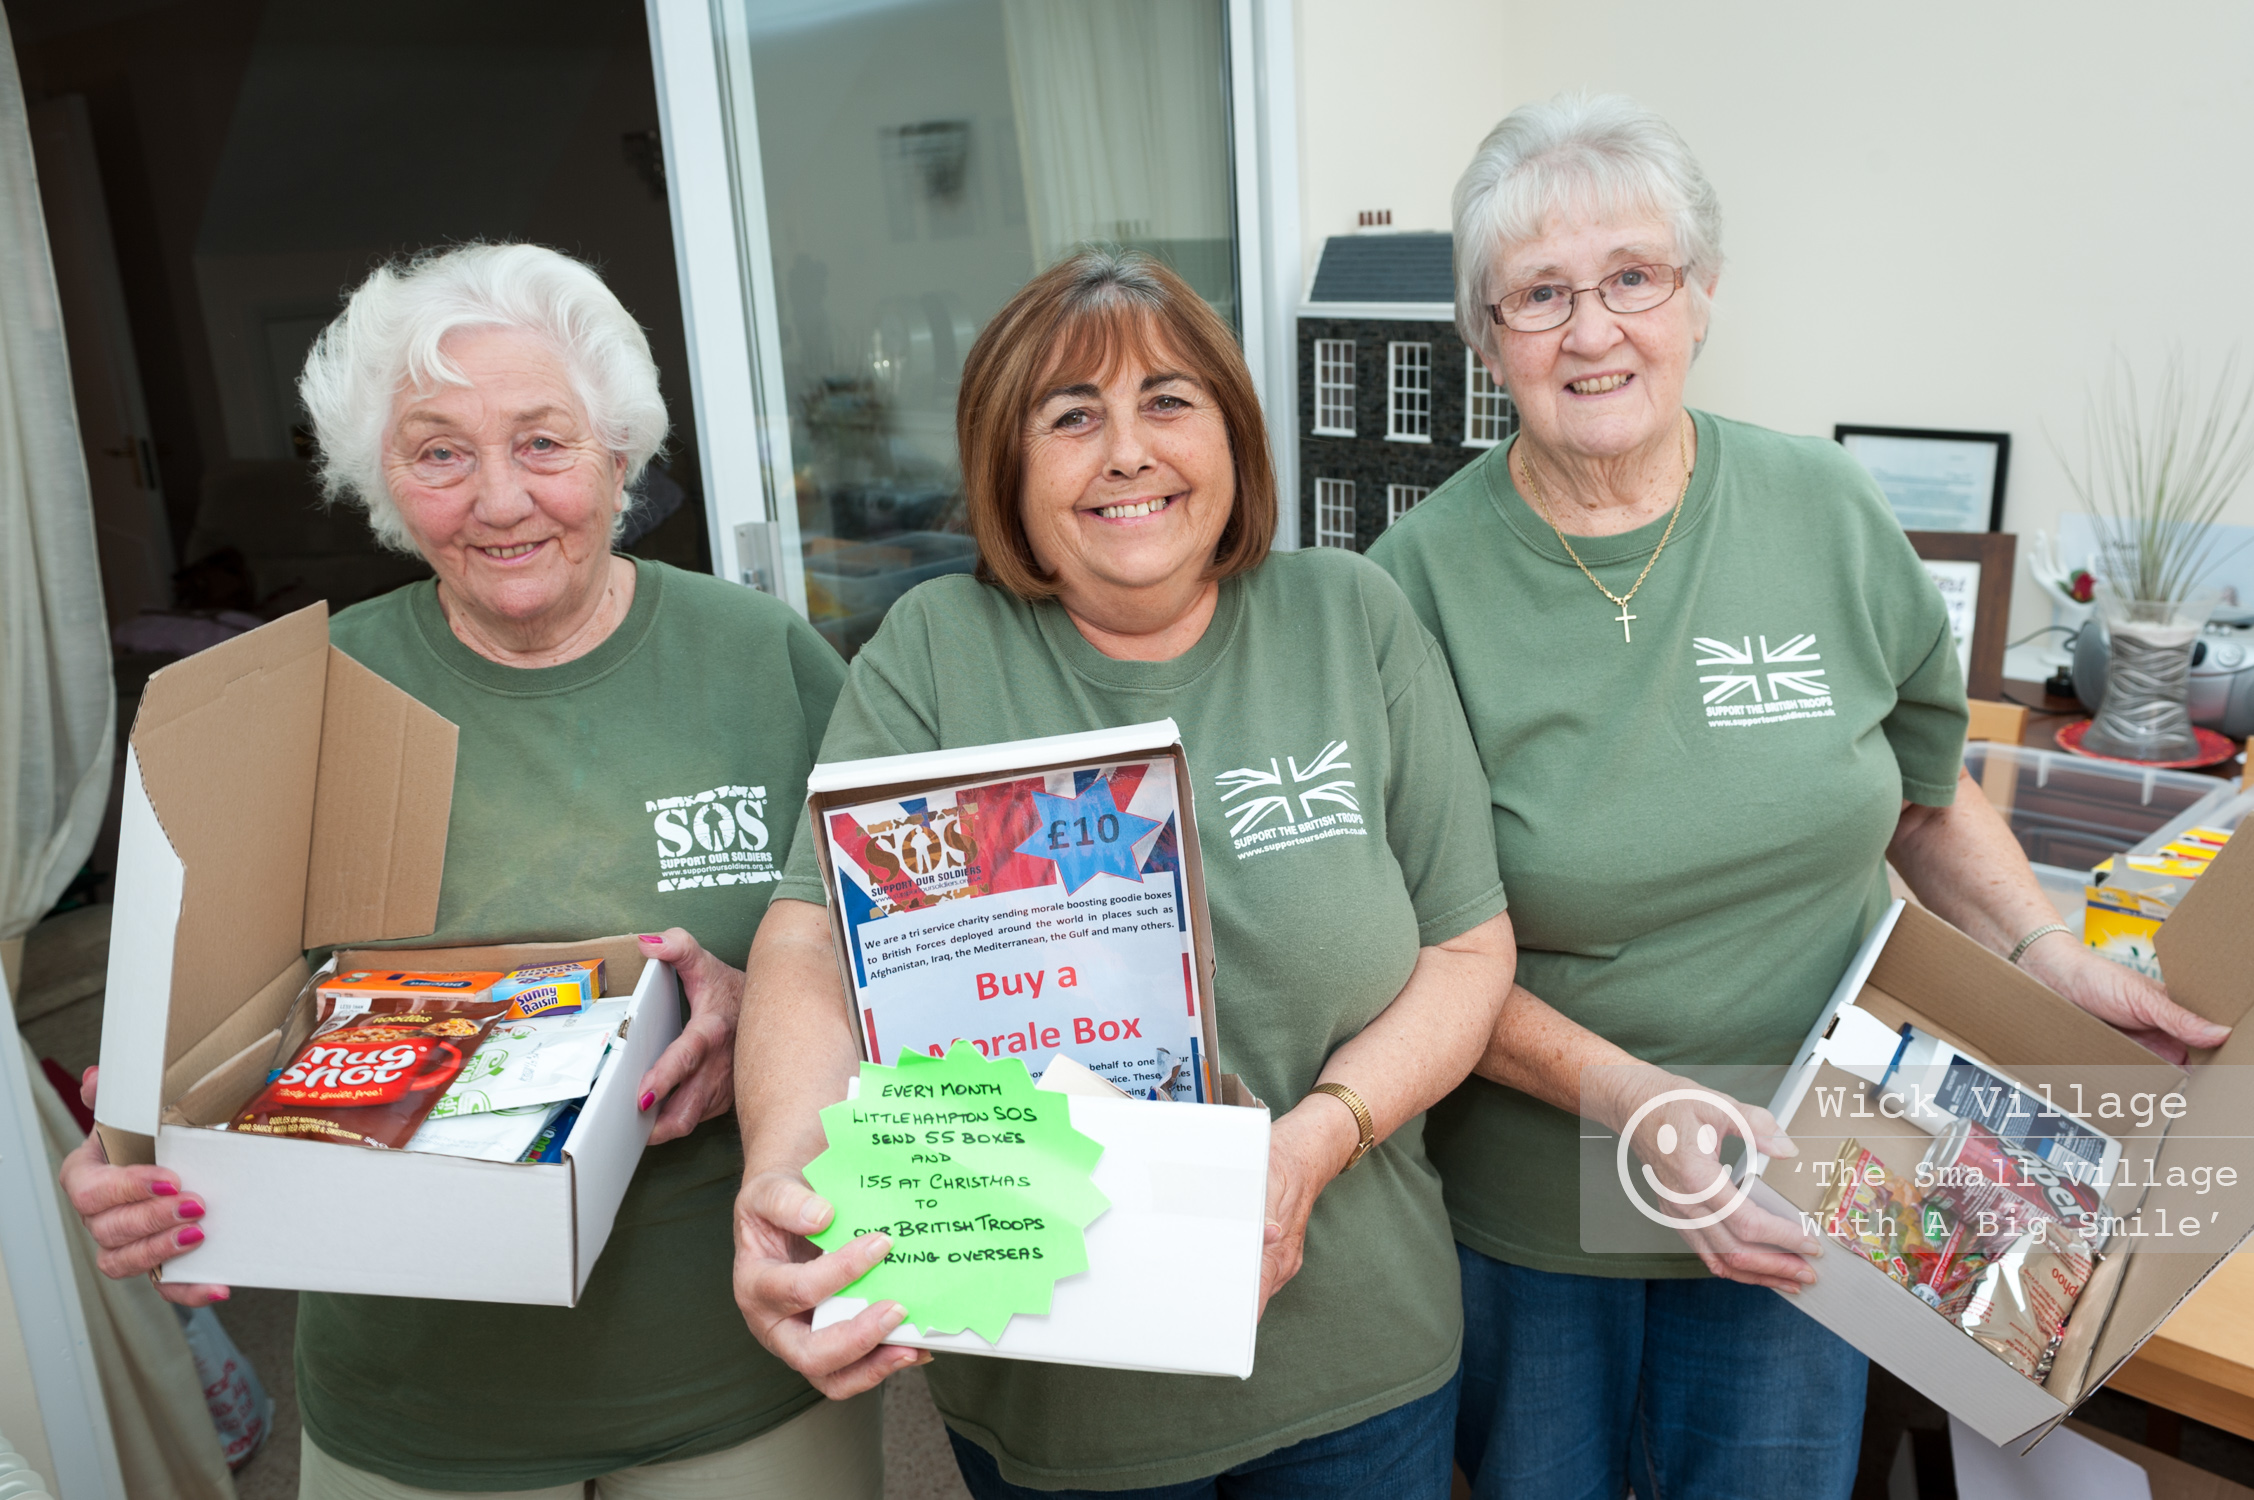 Penny Keen, the Littlehampton area coordinator for Support Our Soldiers, and volunteers Heather Hodges and Brenda Lander. Photo © Scott Ramsey/Wick Village Traders Association.